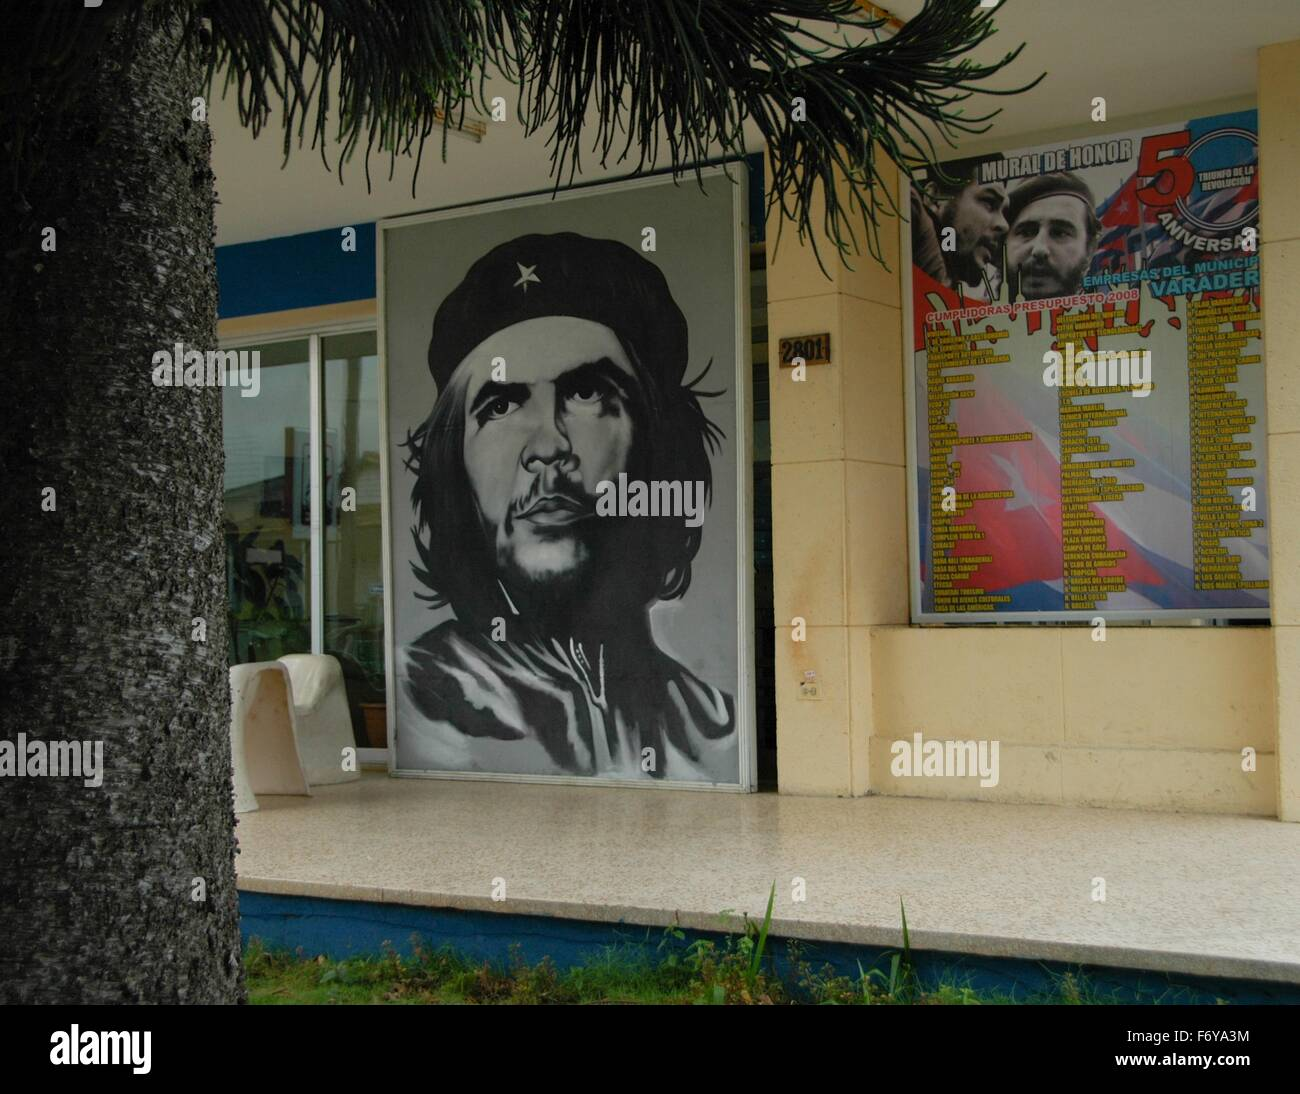 Images of Che Guevara are seen throughout Cuba - Stock Image